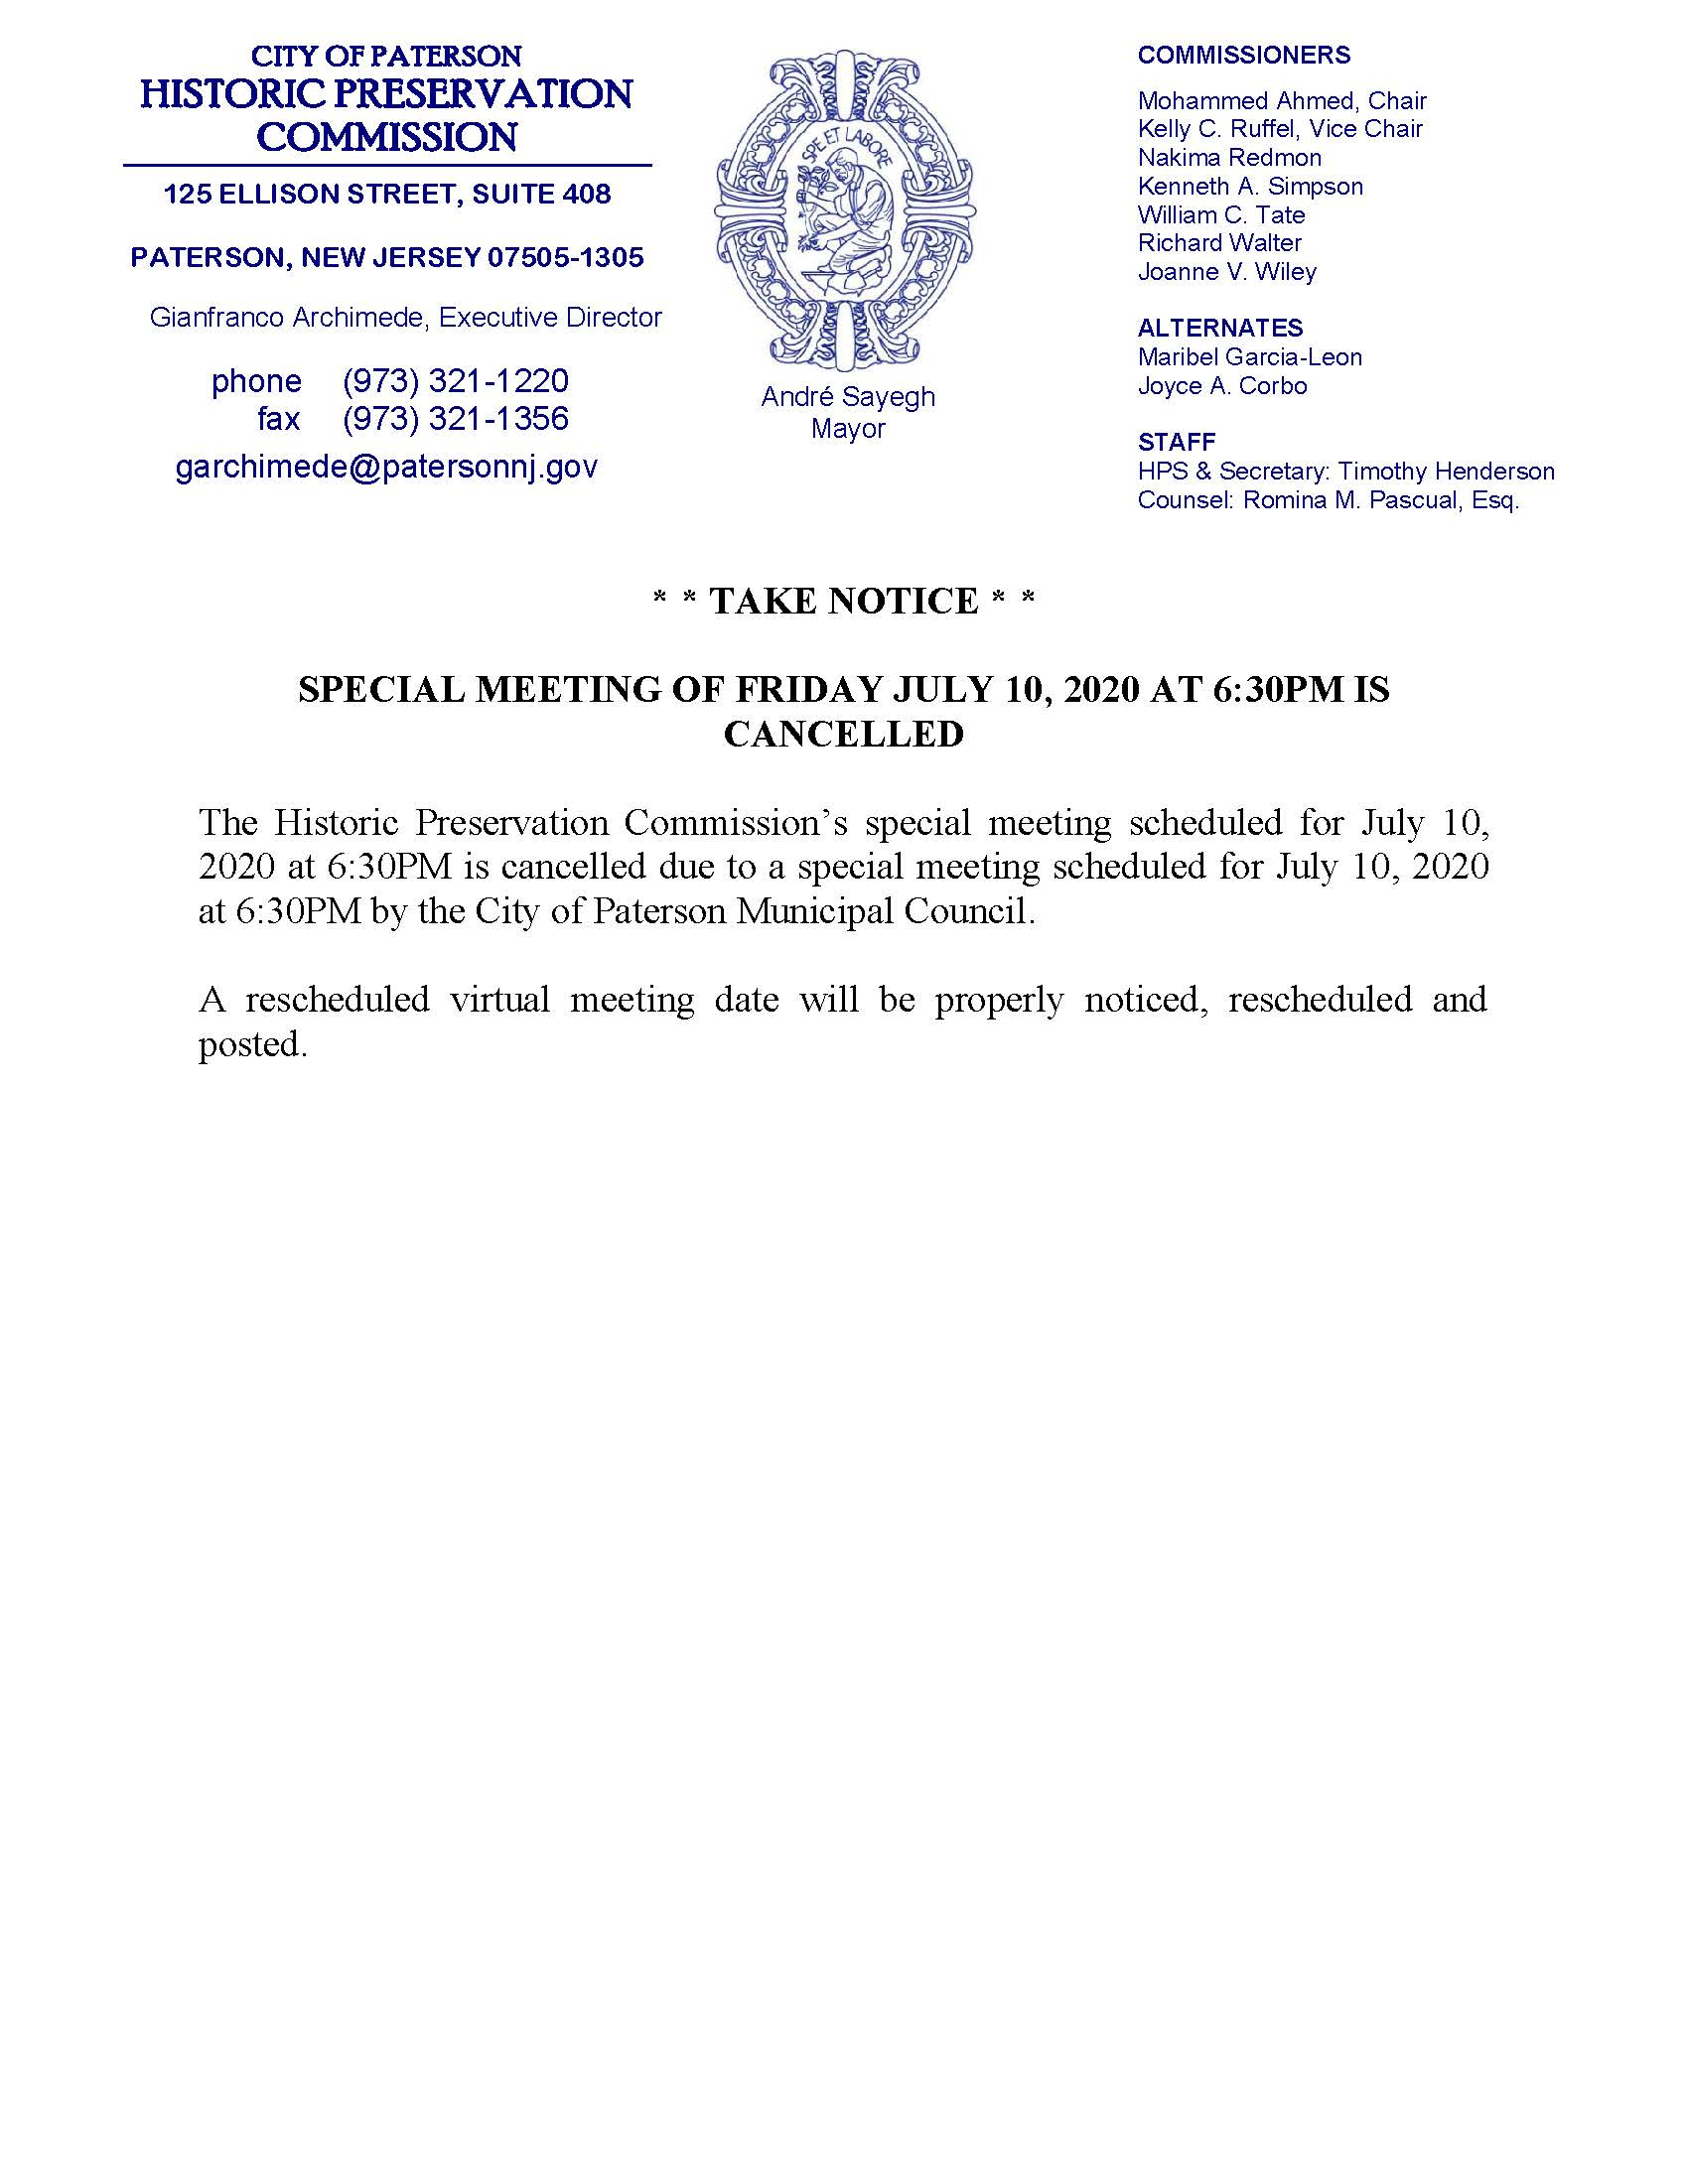 HPC Special Meeting 7/10/2020 CANCELLED